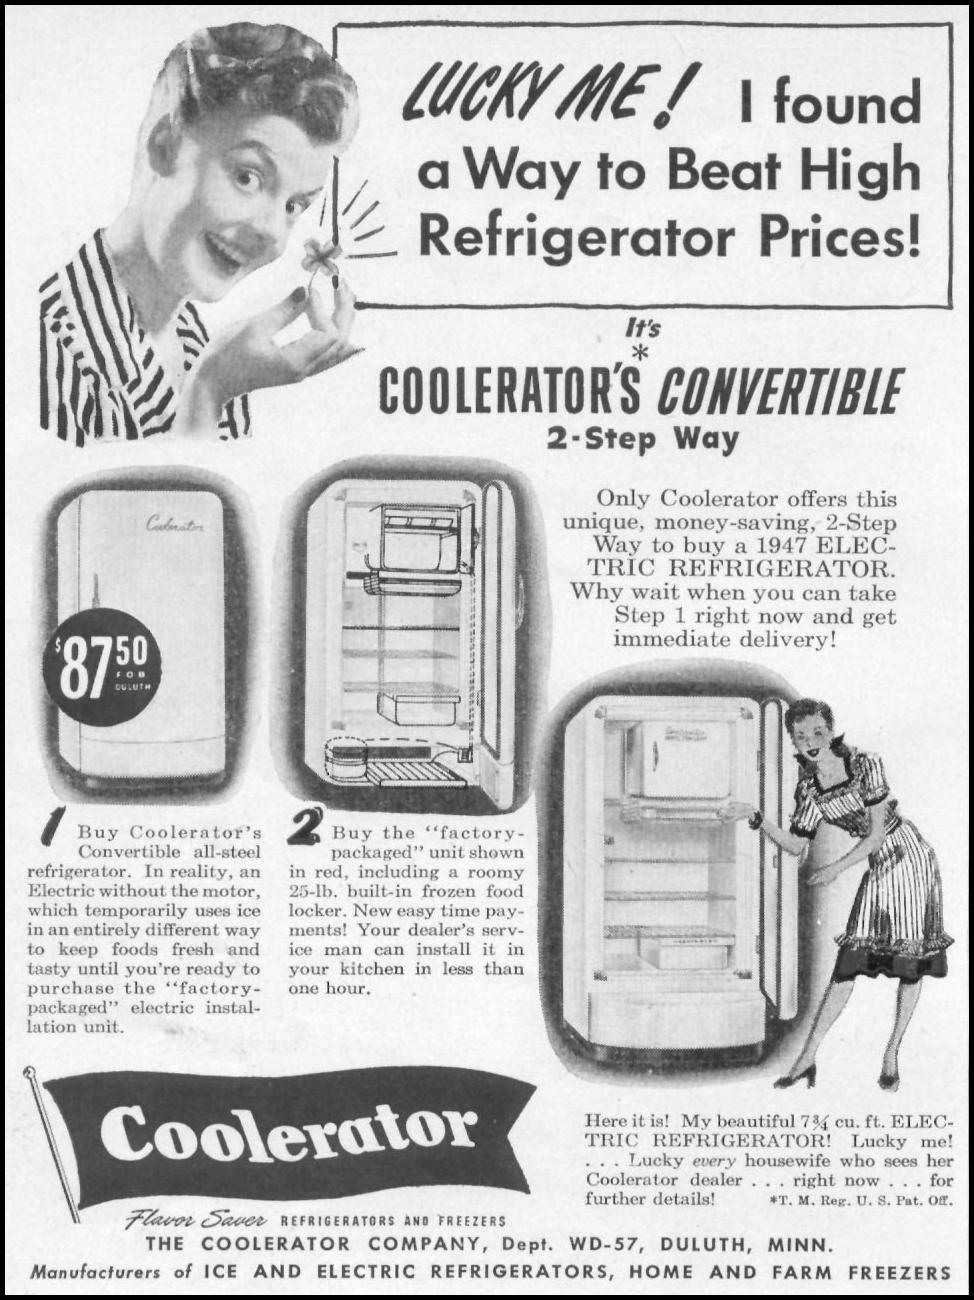 COOLERATOR CONVERTIBLE REFRIGERATOR-FREEZER